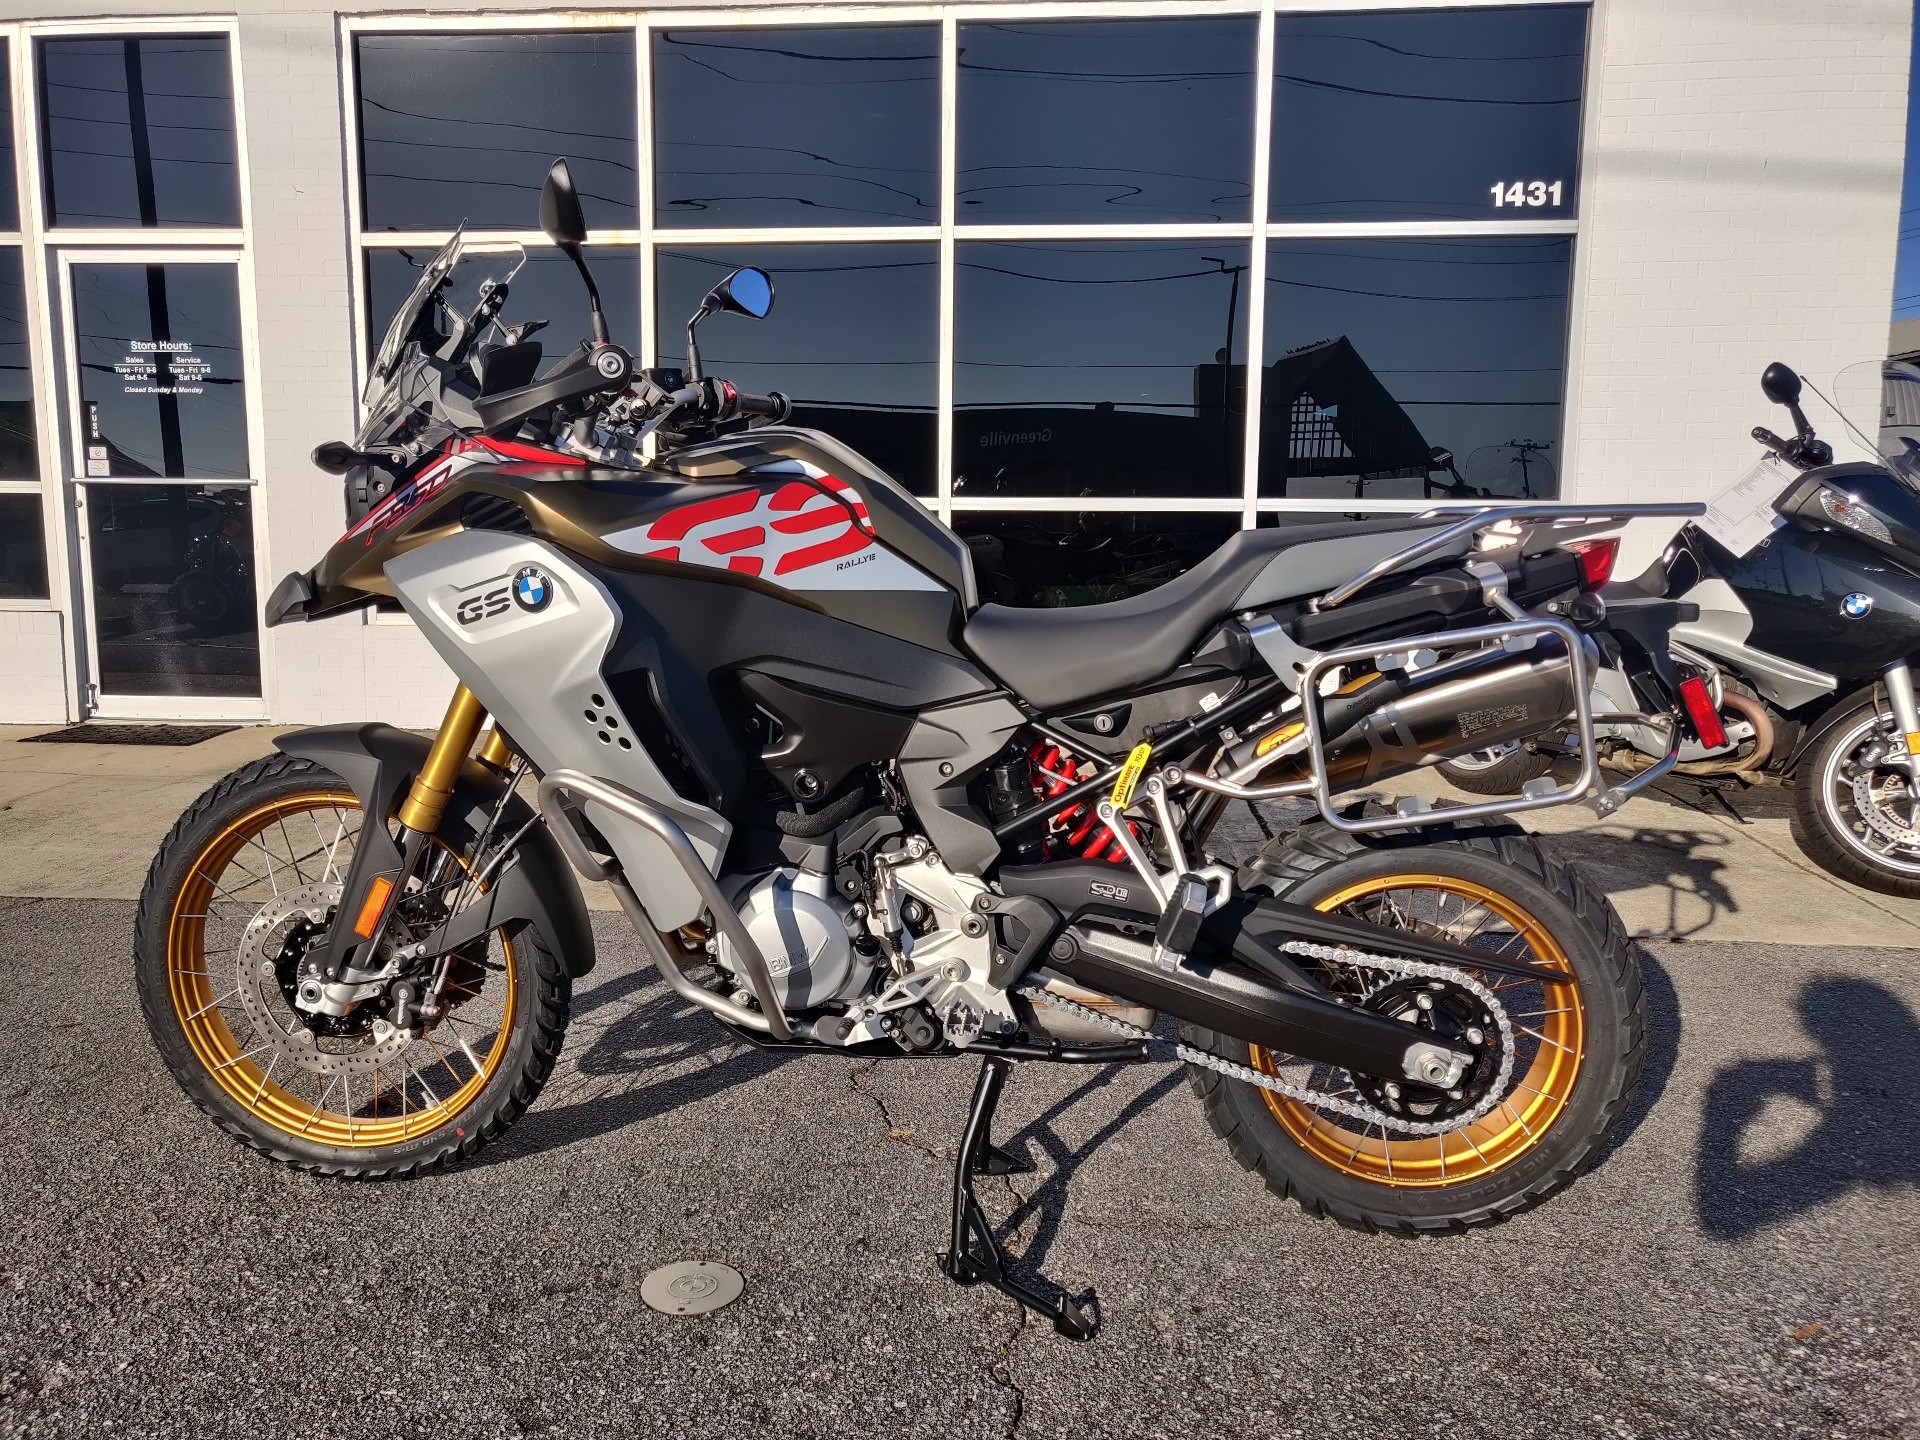 2021 BMW F850 GS ADVENTURE in Greenville, South Carolina - Photo 8